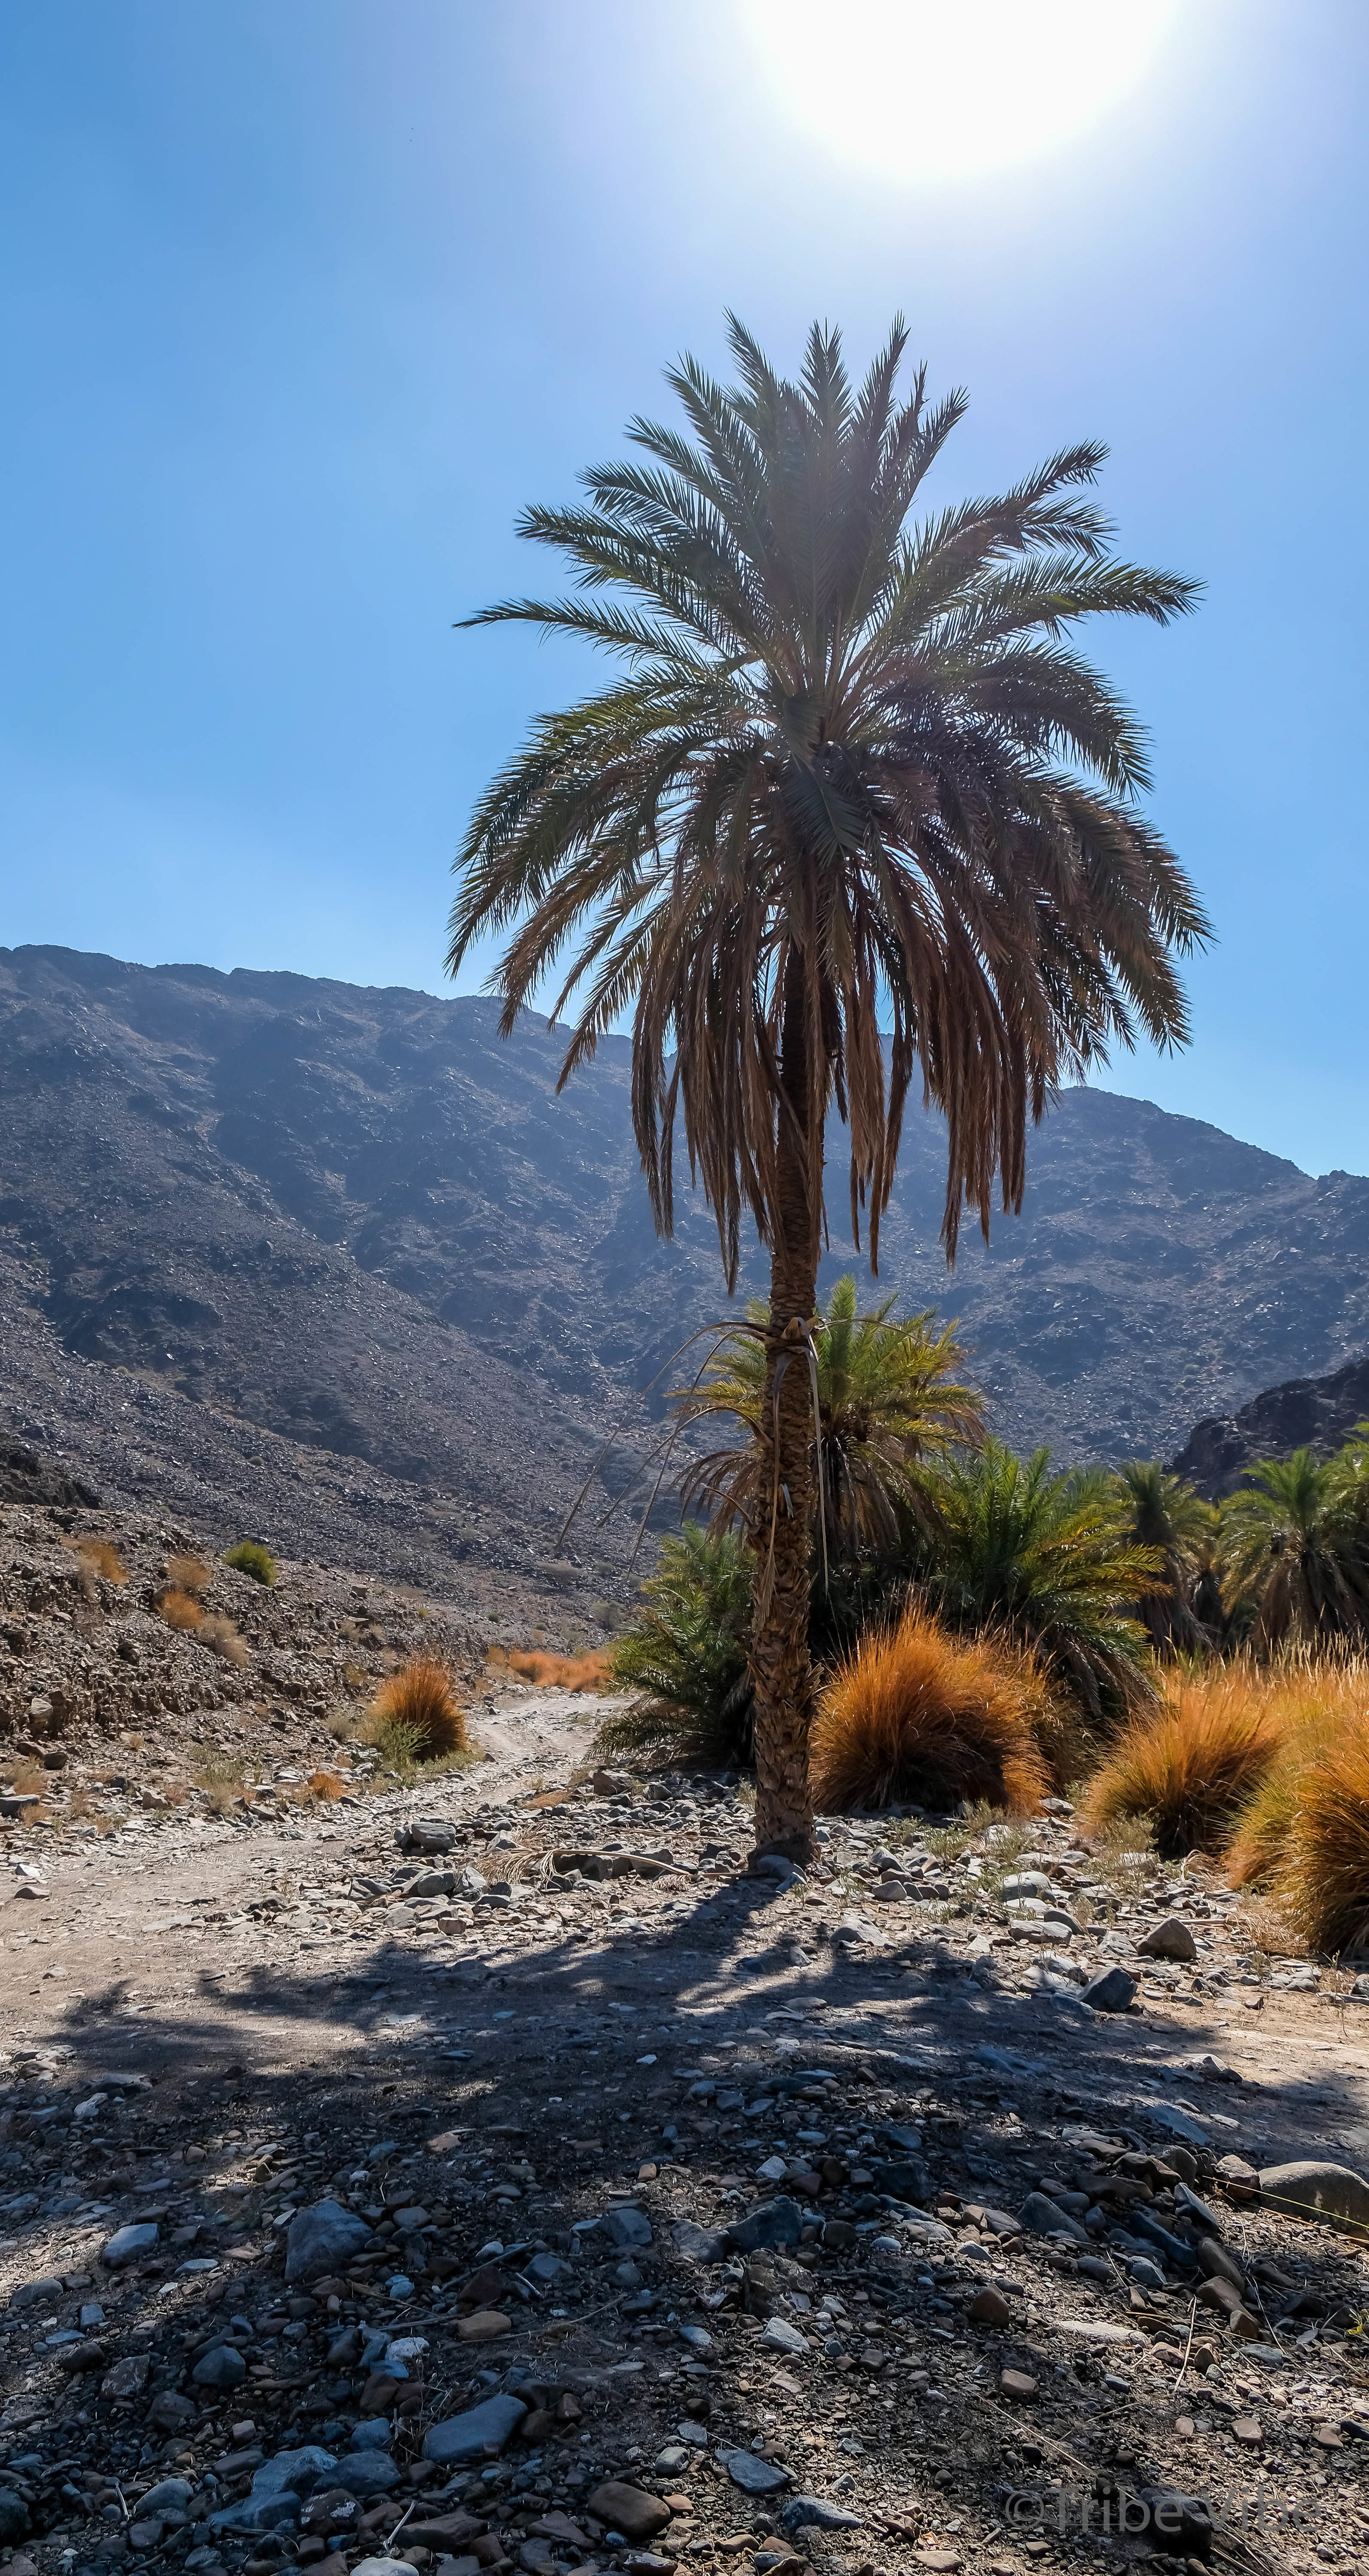 Beautiful Palms in the middle of a barren landscape